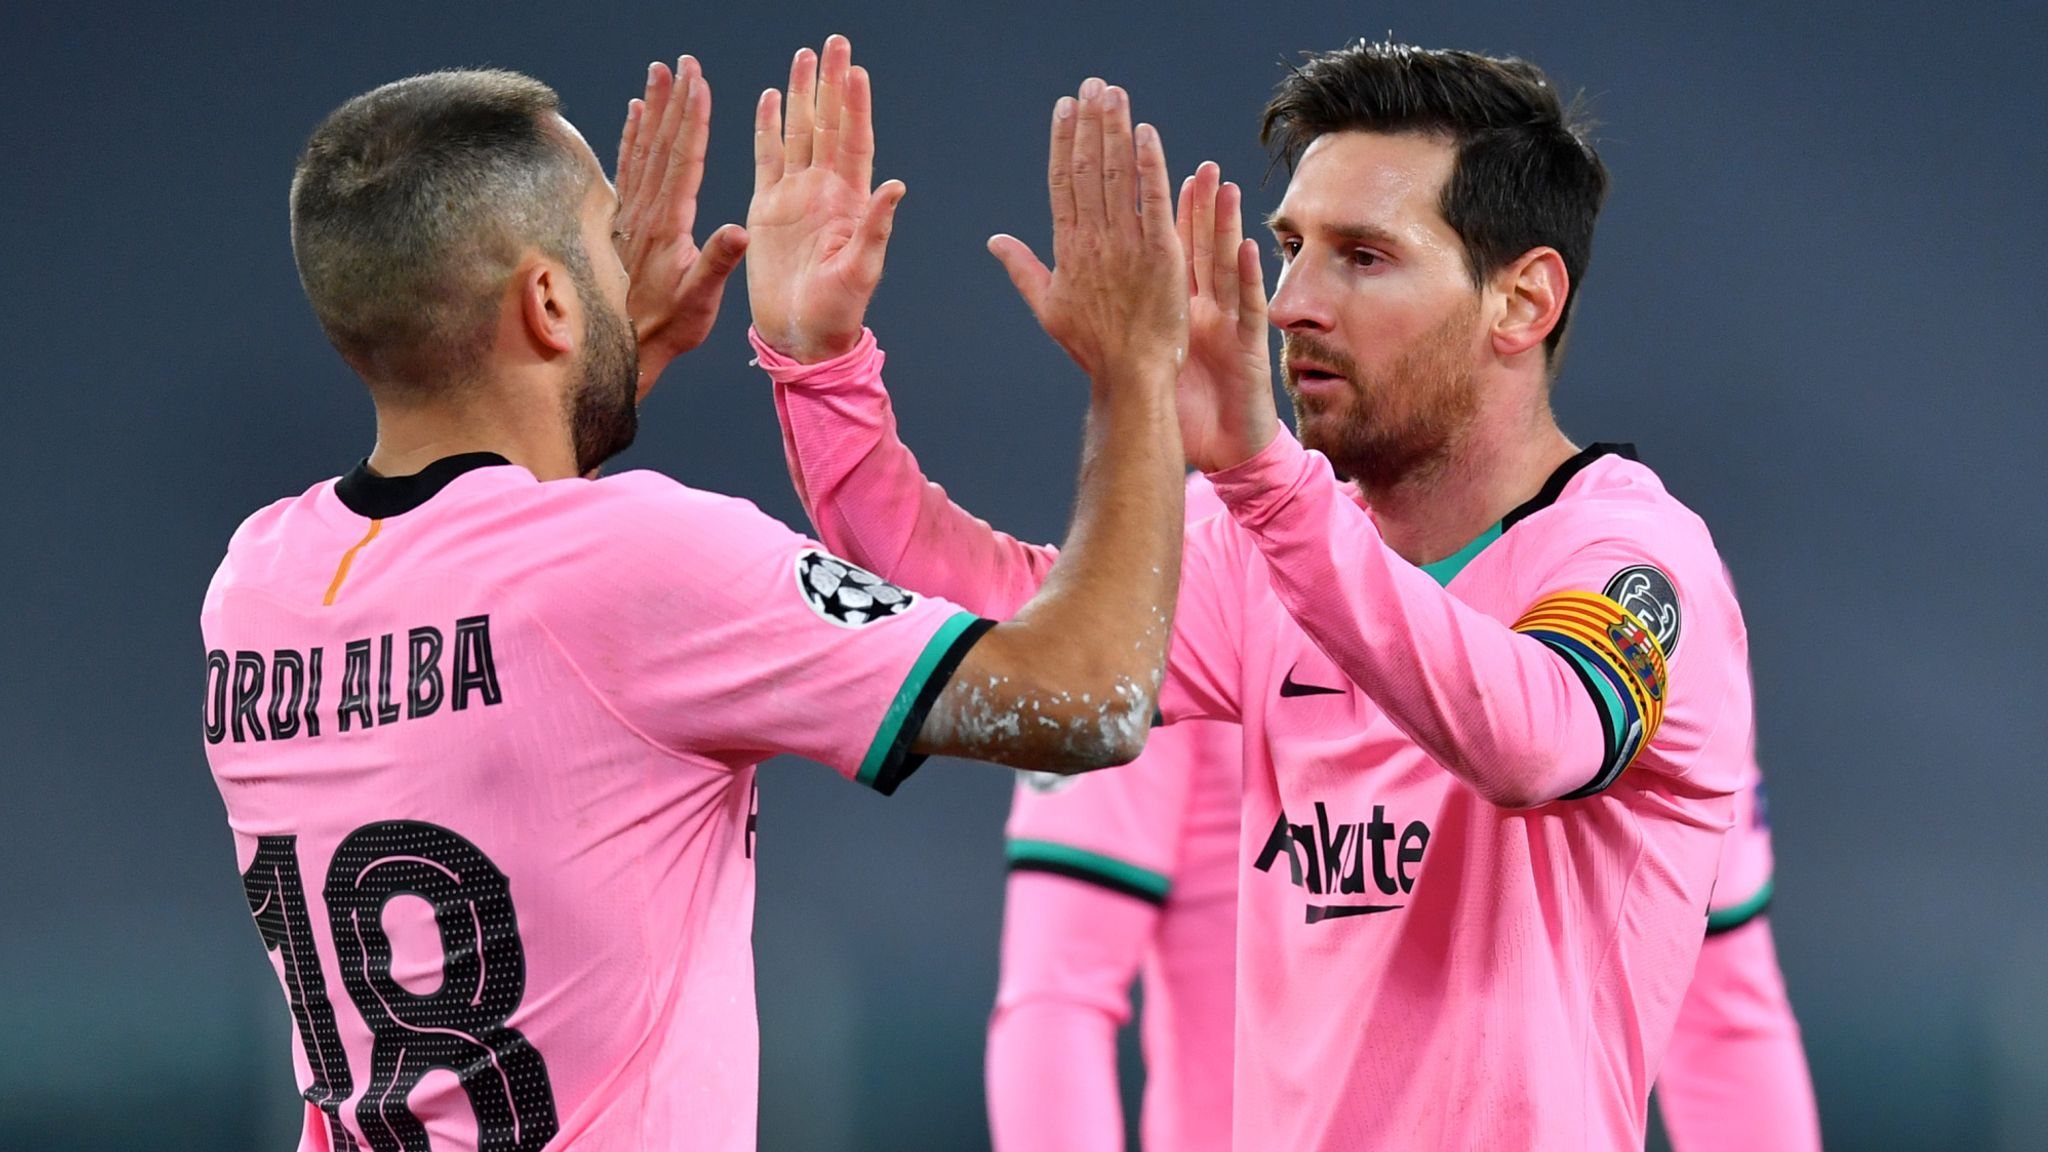 juventus 0 2 barcelona match report highlights juventus 0 2 barcelona match report